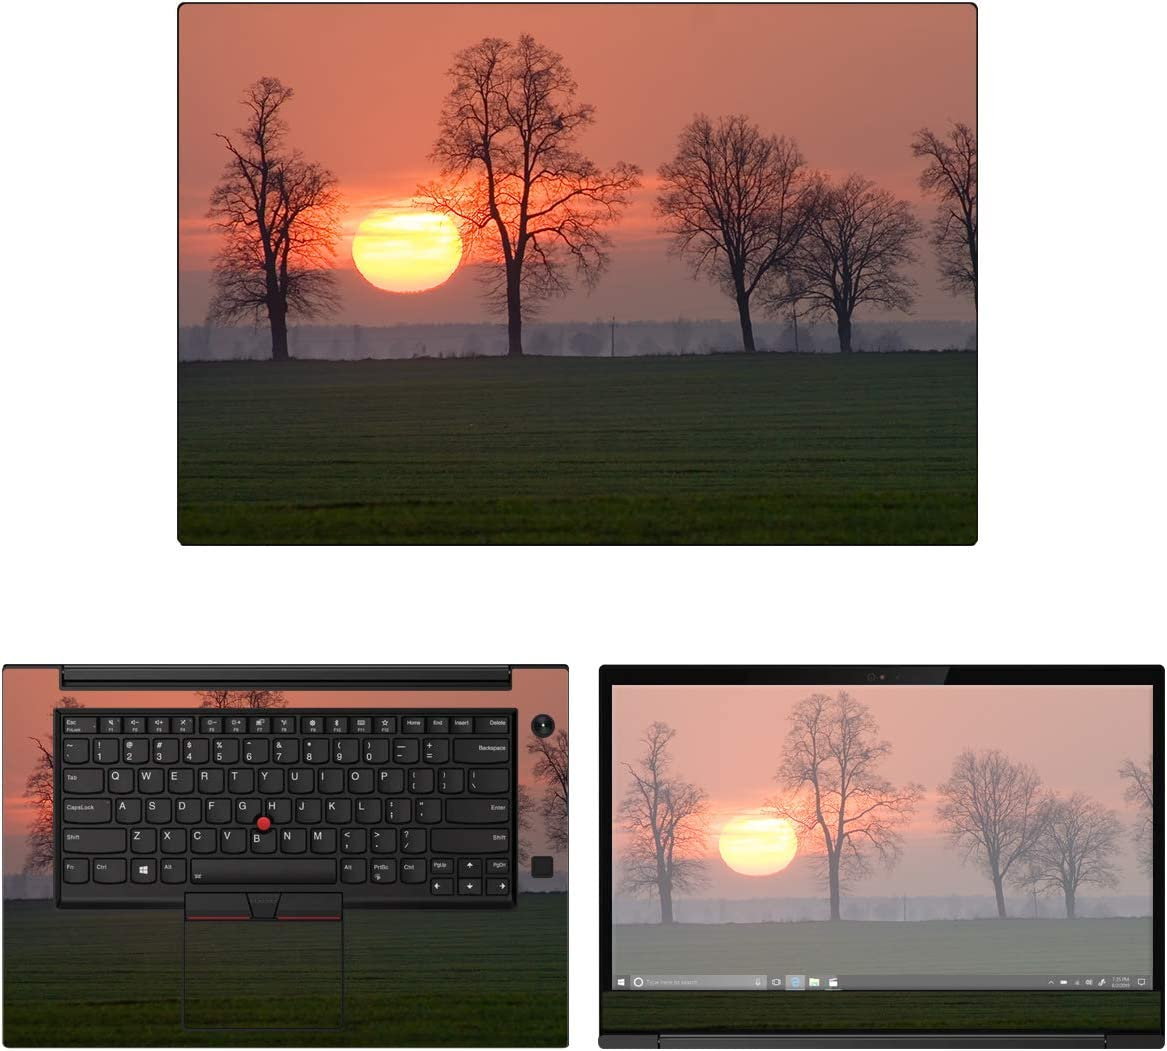 "Decalrus - Protective Decal Sunset Skin Sticker for Lenovo ThinkPad X1 Extreme (2nd Gen.) (15.6"" Screen) case Cover wrap LEthnkpdX1extreme_2gen-256"